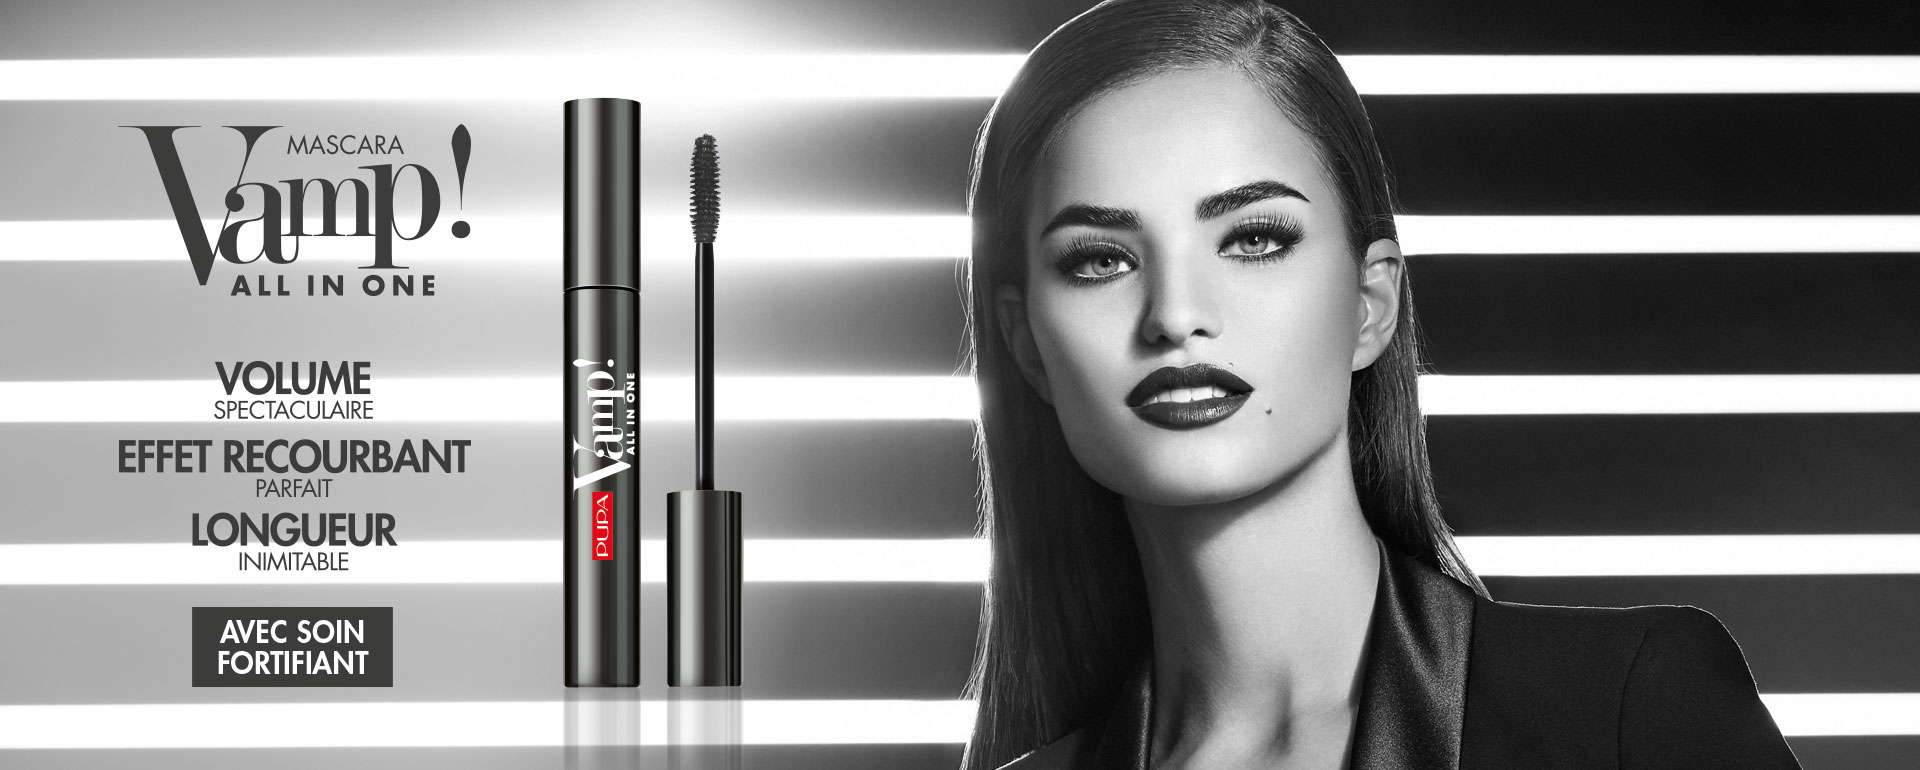 Mascara Vamp! All in One - PUPA Milano